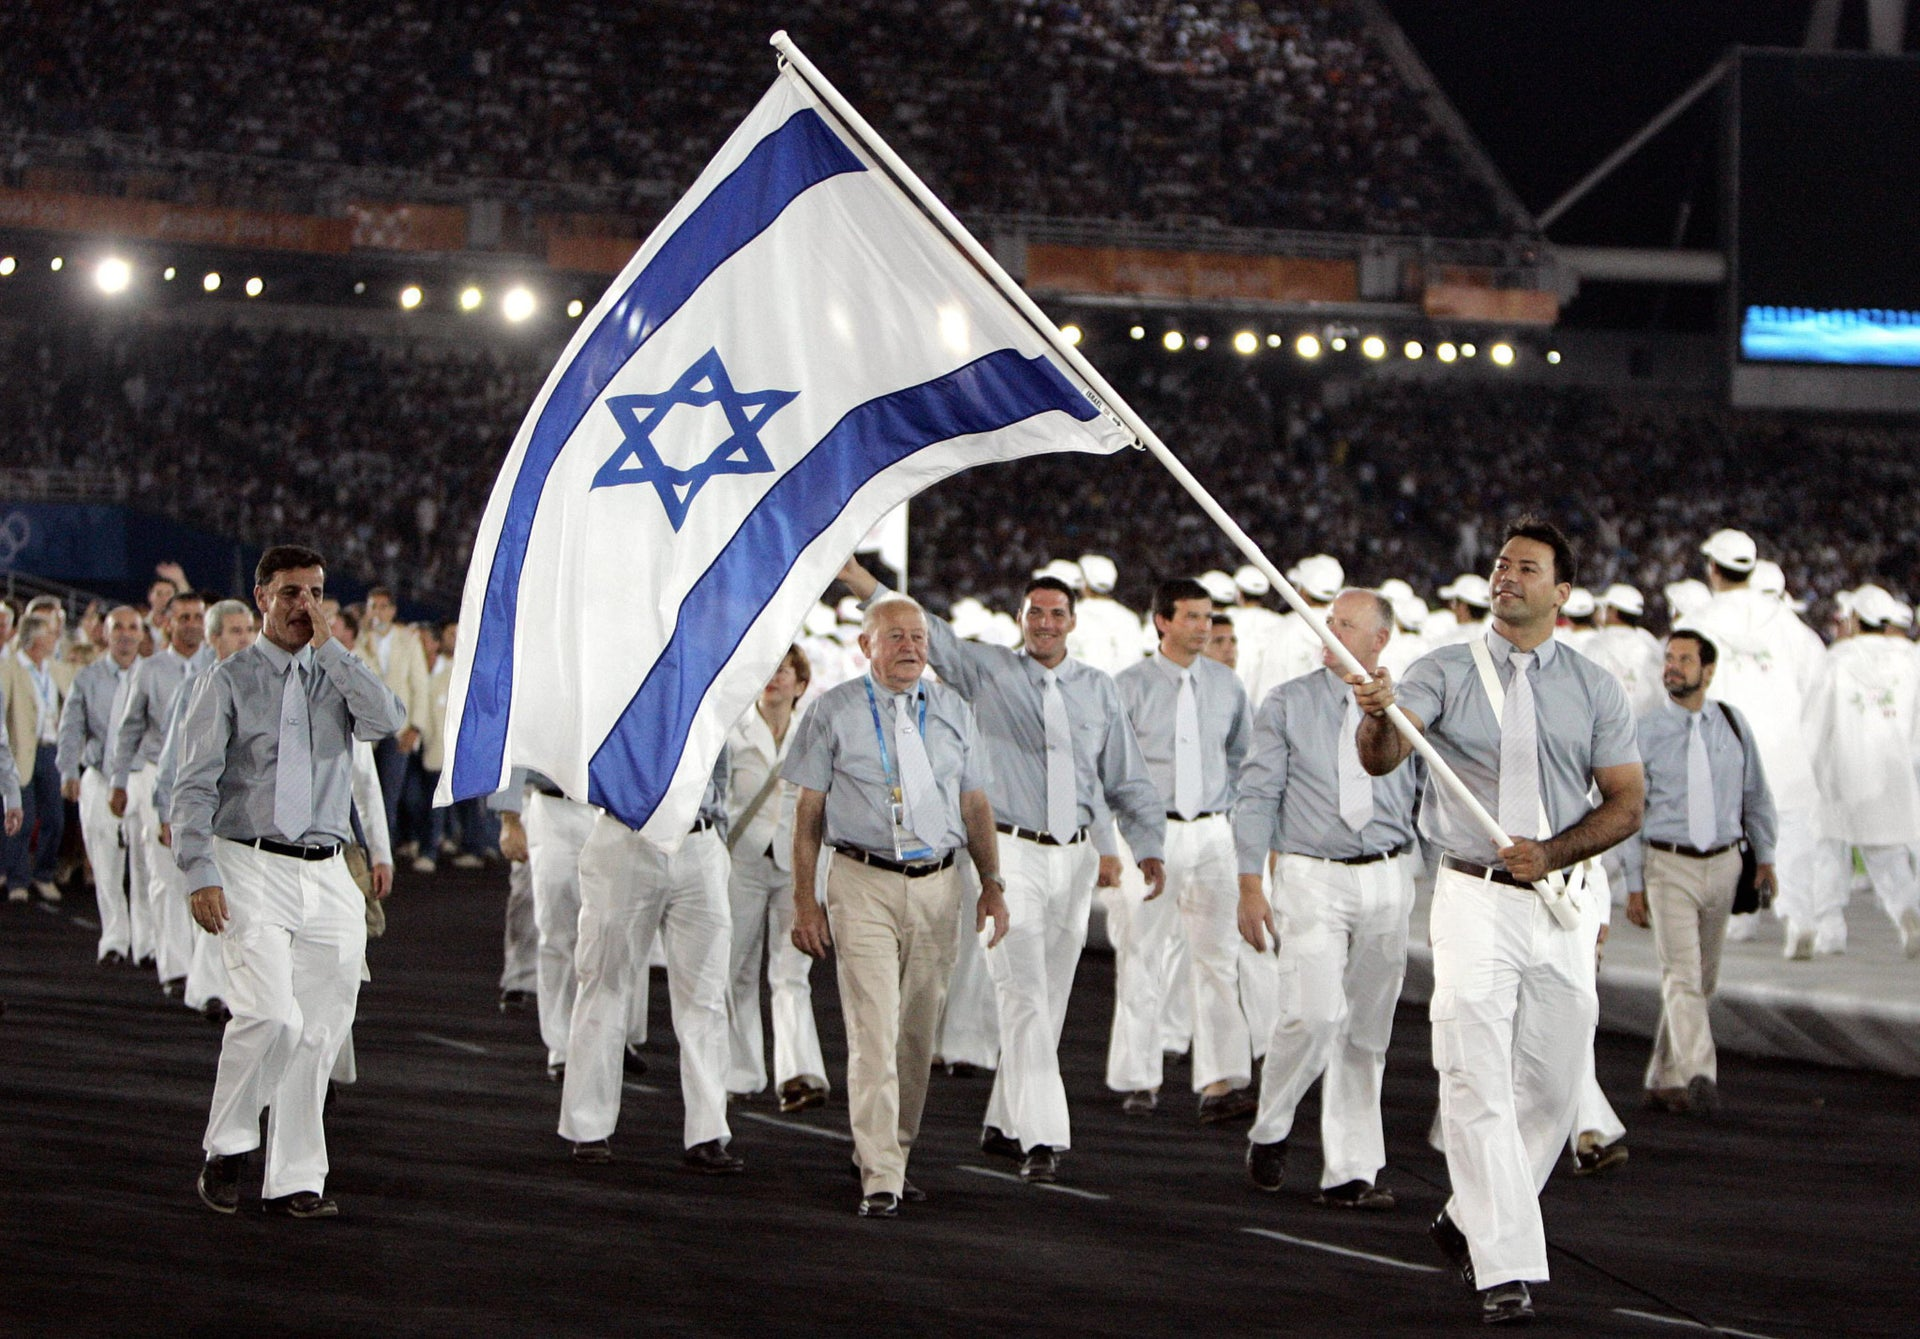 Members of Israeli Olympic team in Athens, Greece, 2004.